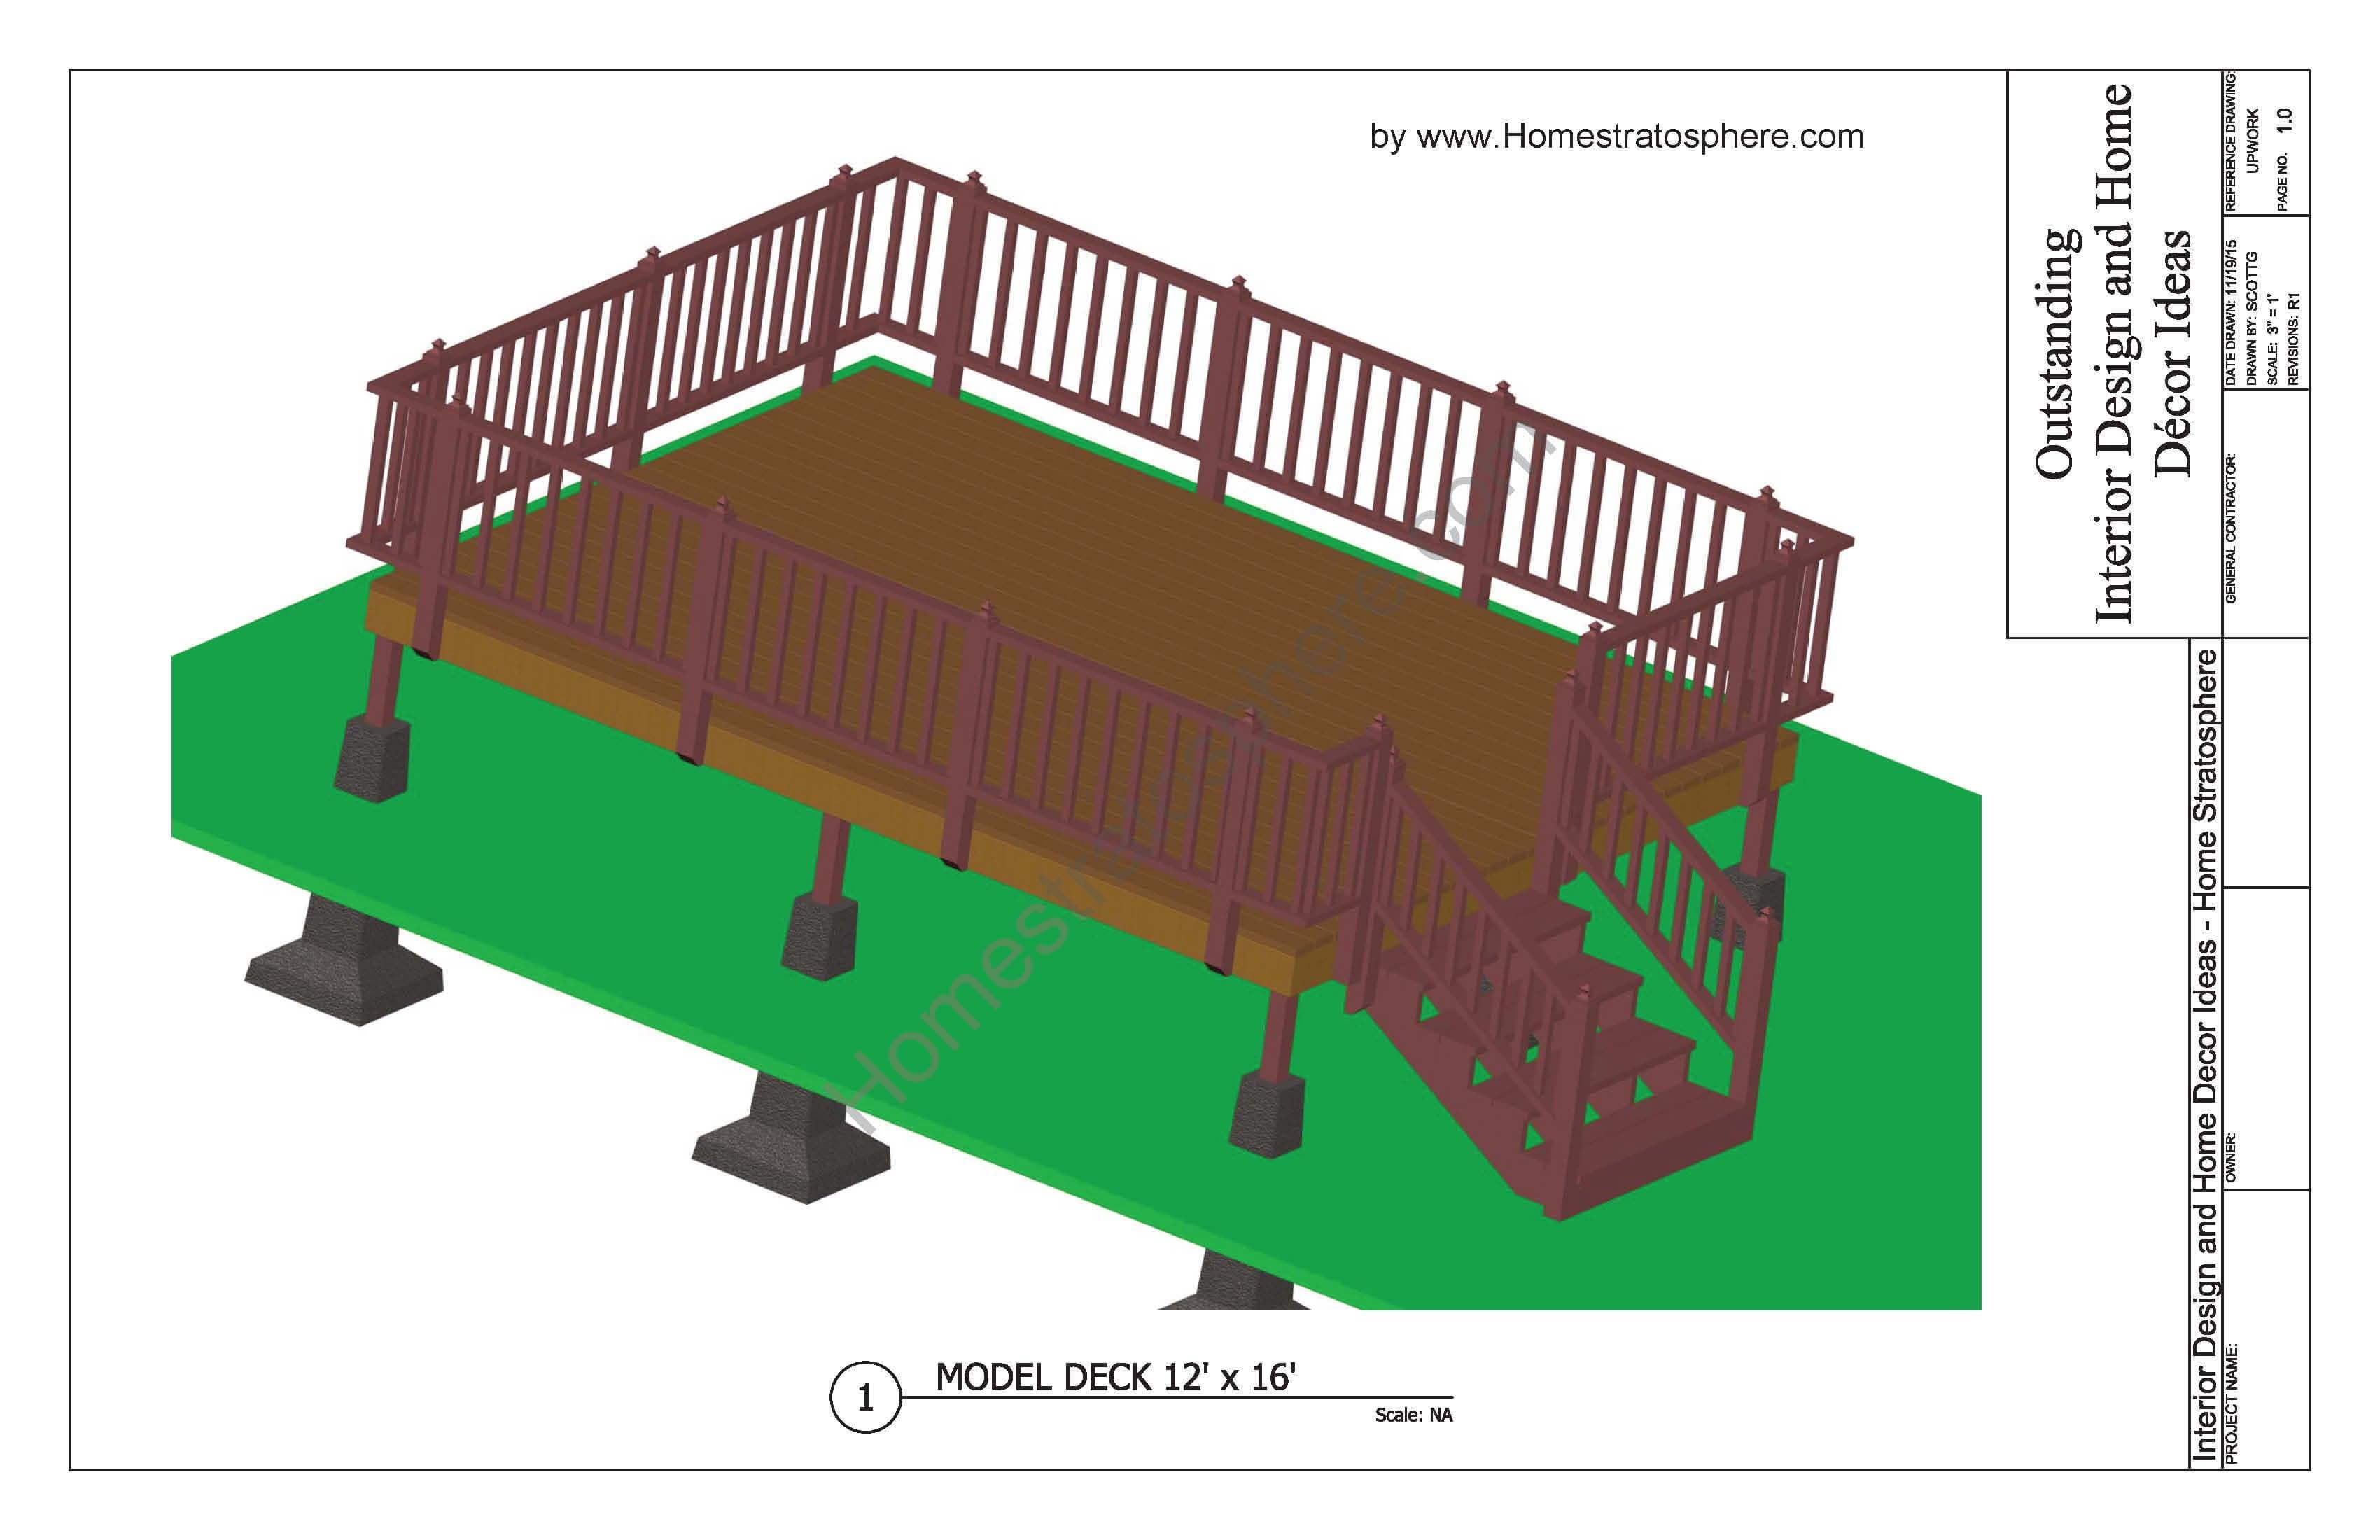 Free Deck Plans And Blueprints Online With Pdf Downloads Free Deck Plans Deck Building Plans Wood Deck Plans